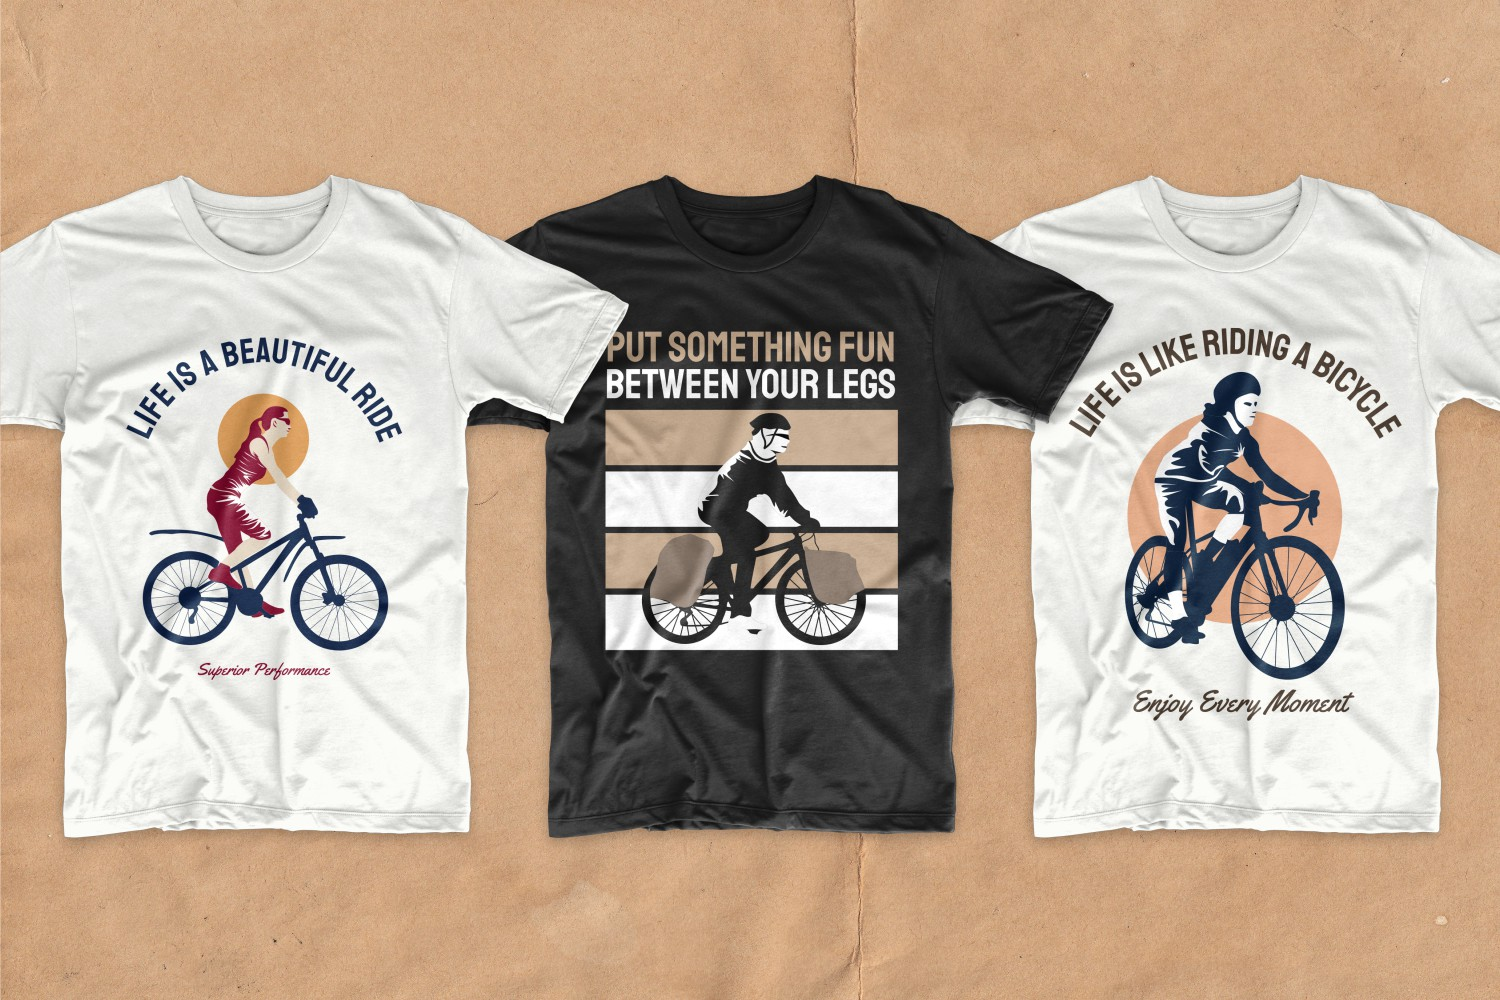 Three T-shirts in classic colors featuring urban cyclists.